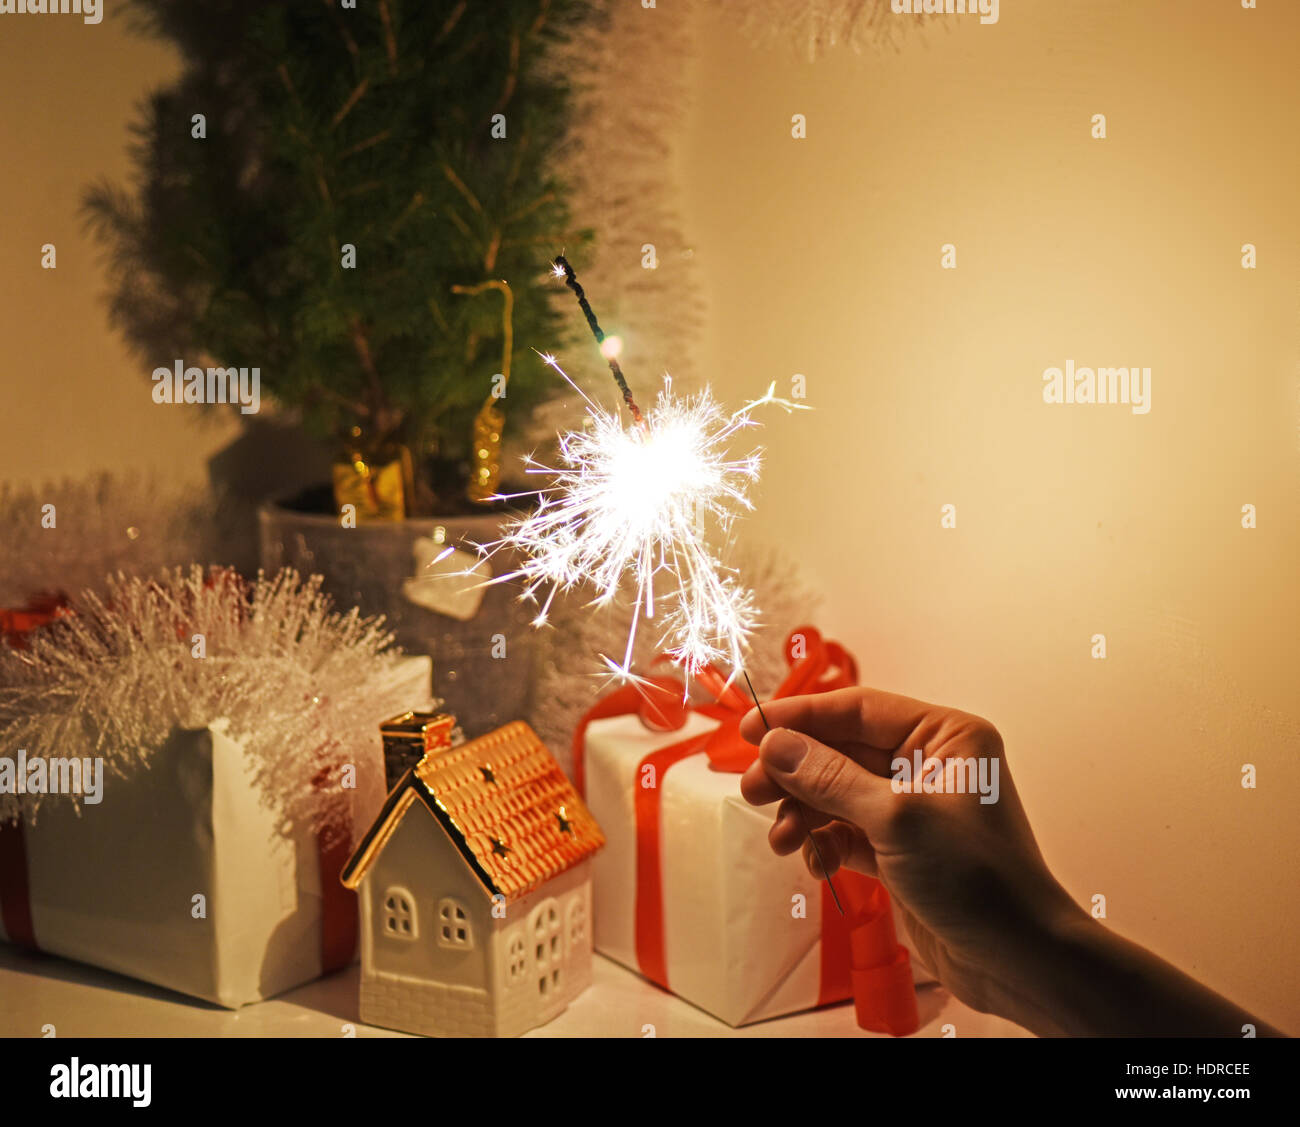 Christmas sparklers in darkness. - Stock Image